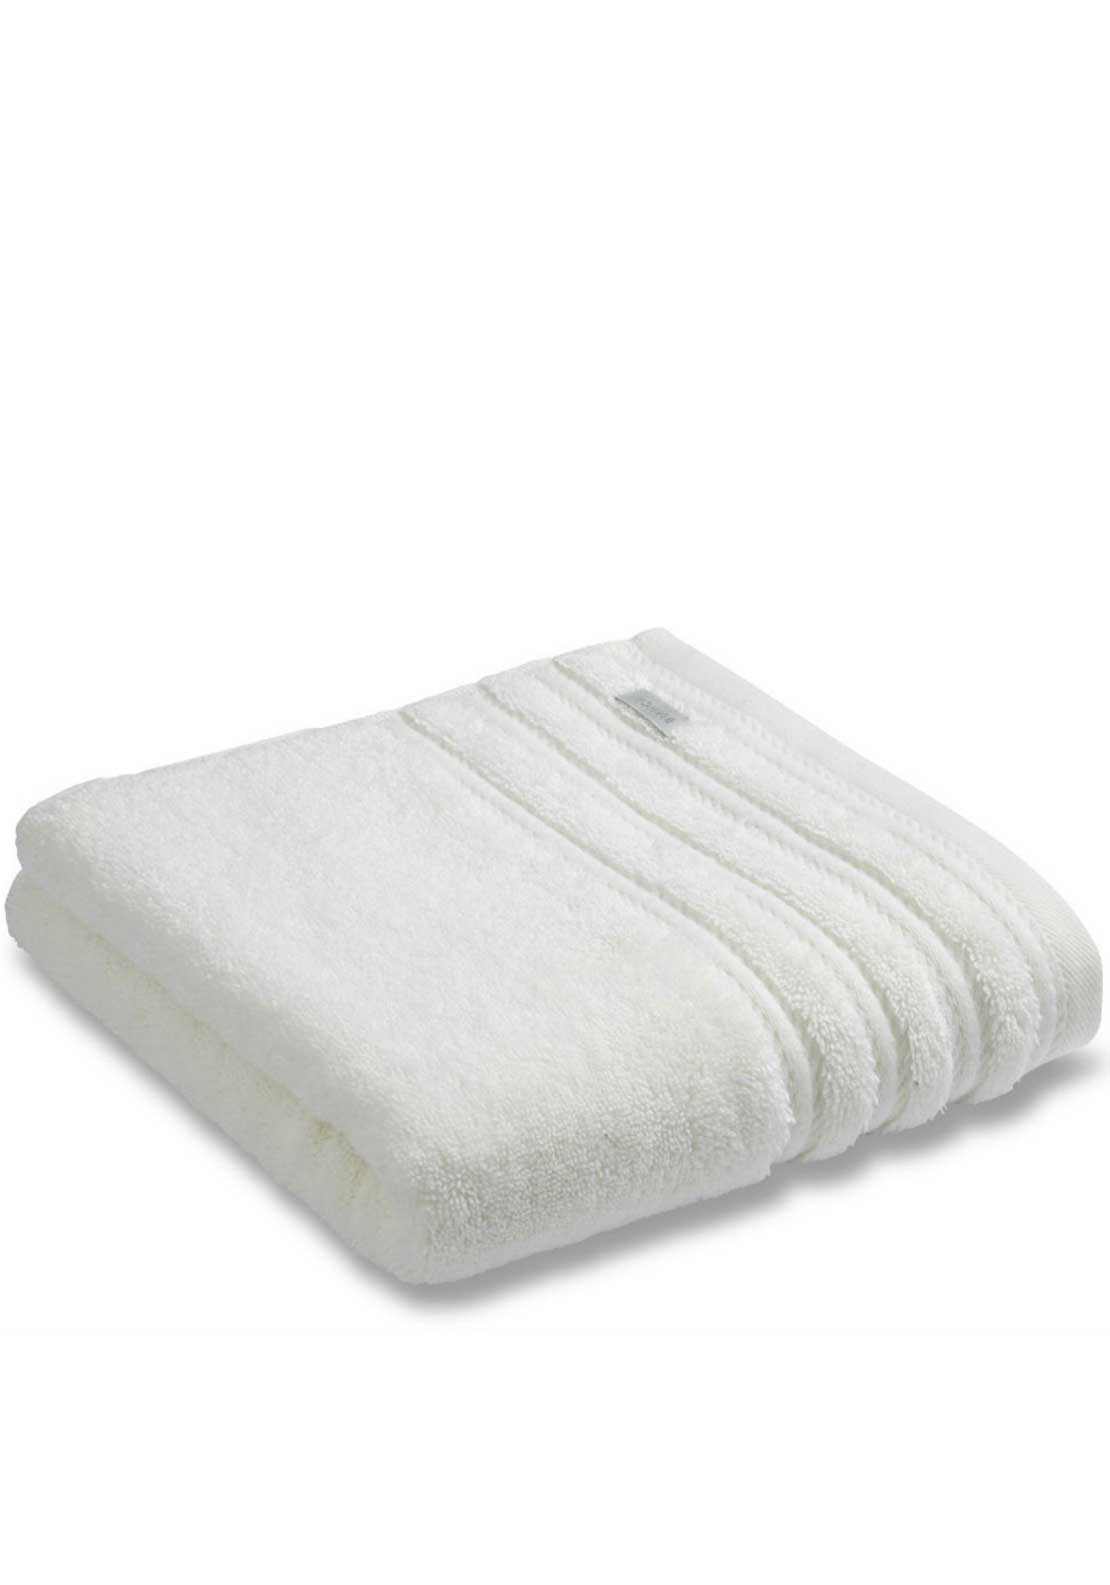 Bianca Combed Cotton Towel Range, Cream